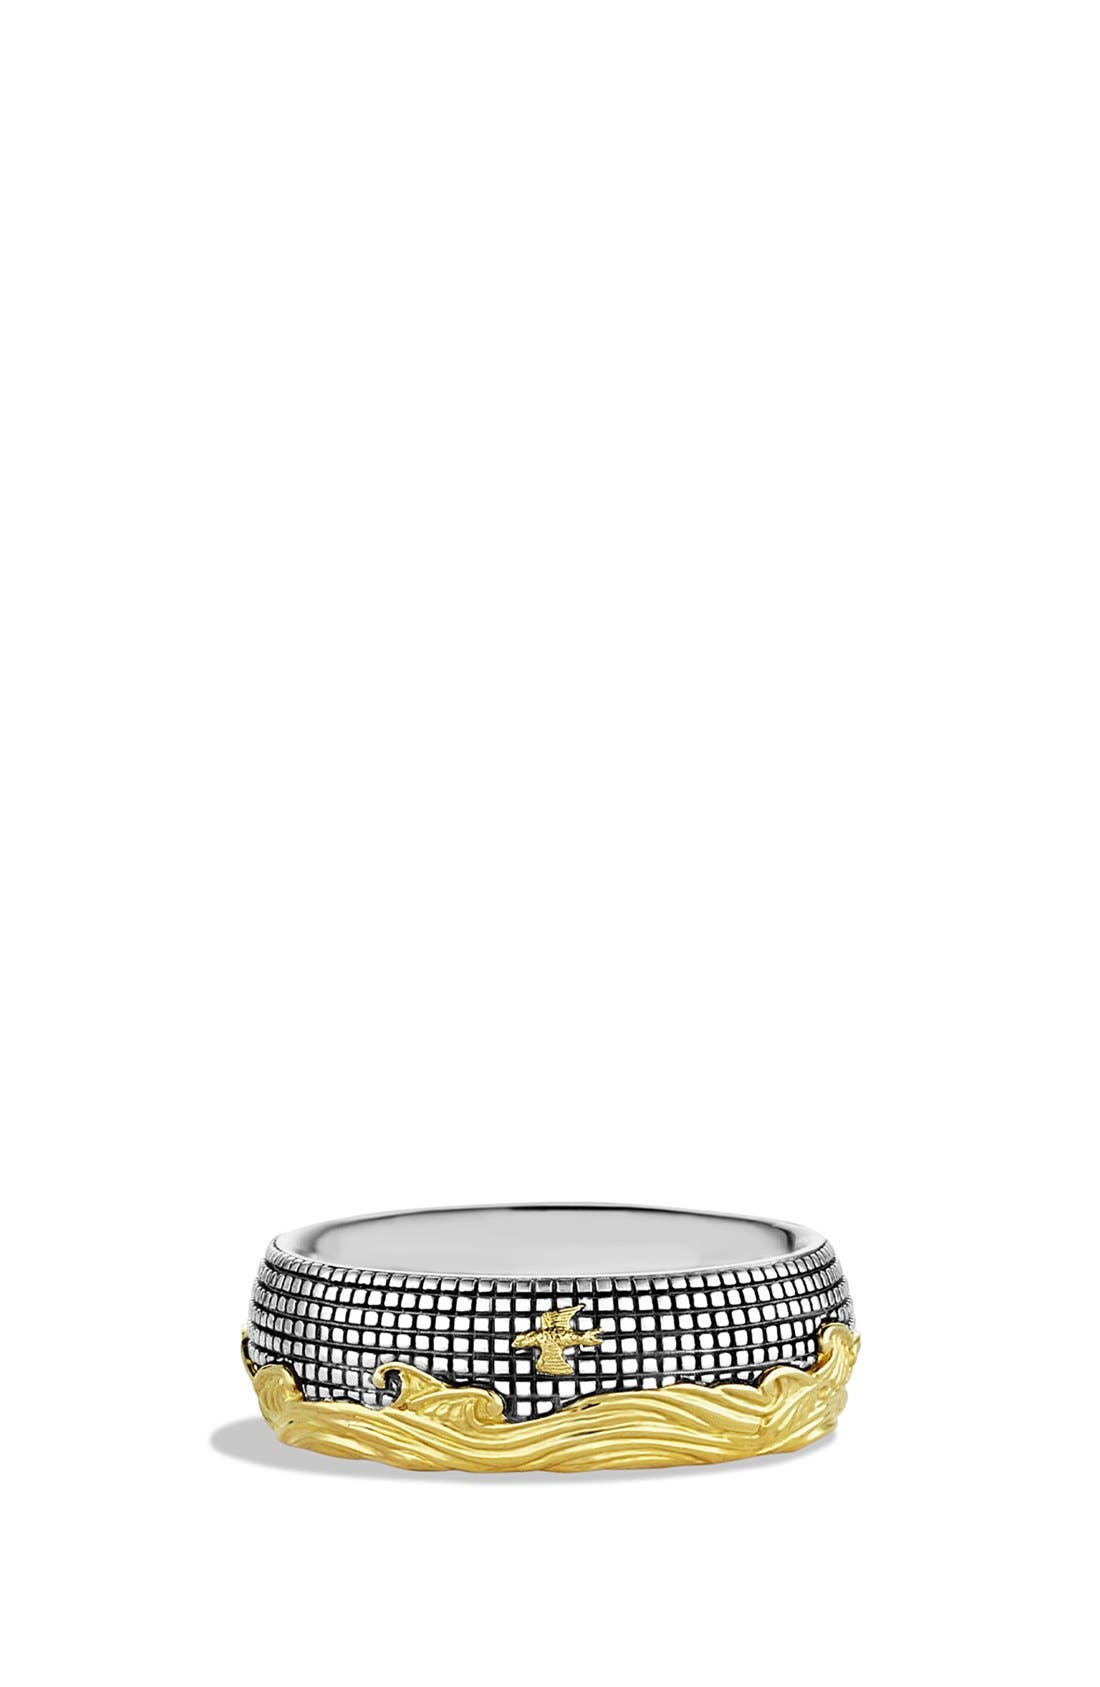 'Waves' Band Ring with Gold,                             Main thumbnail 1, color,                             TWO TONE